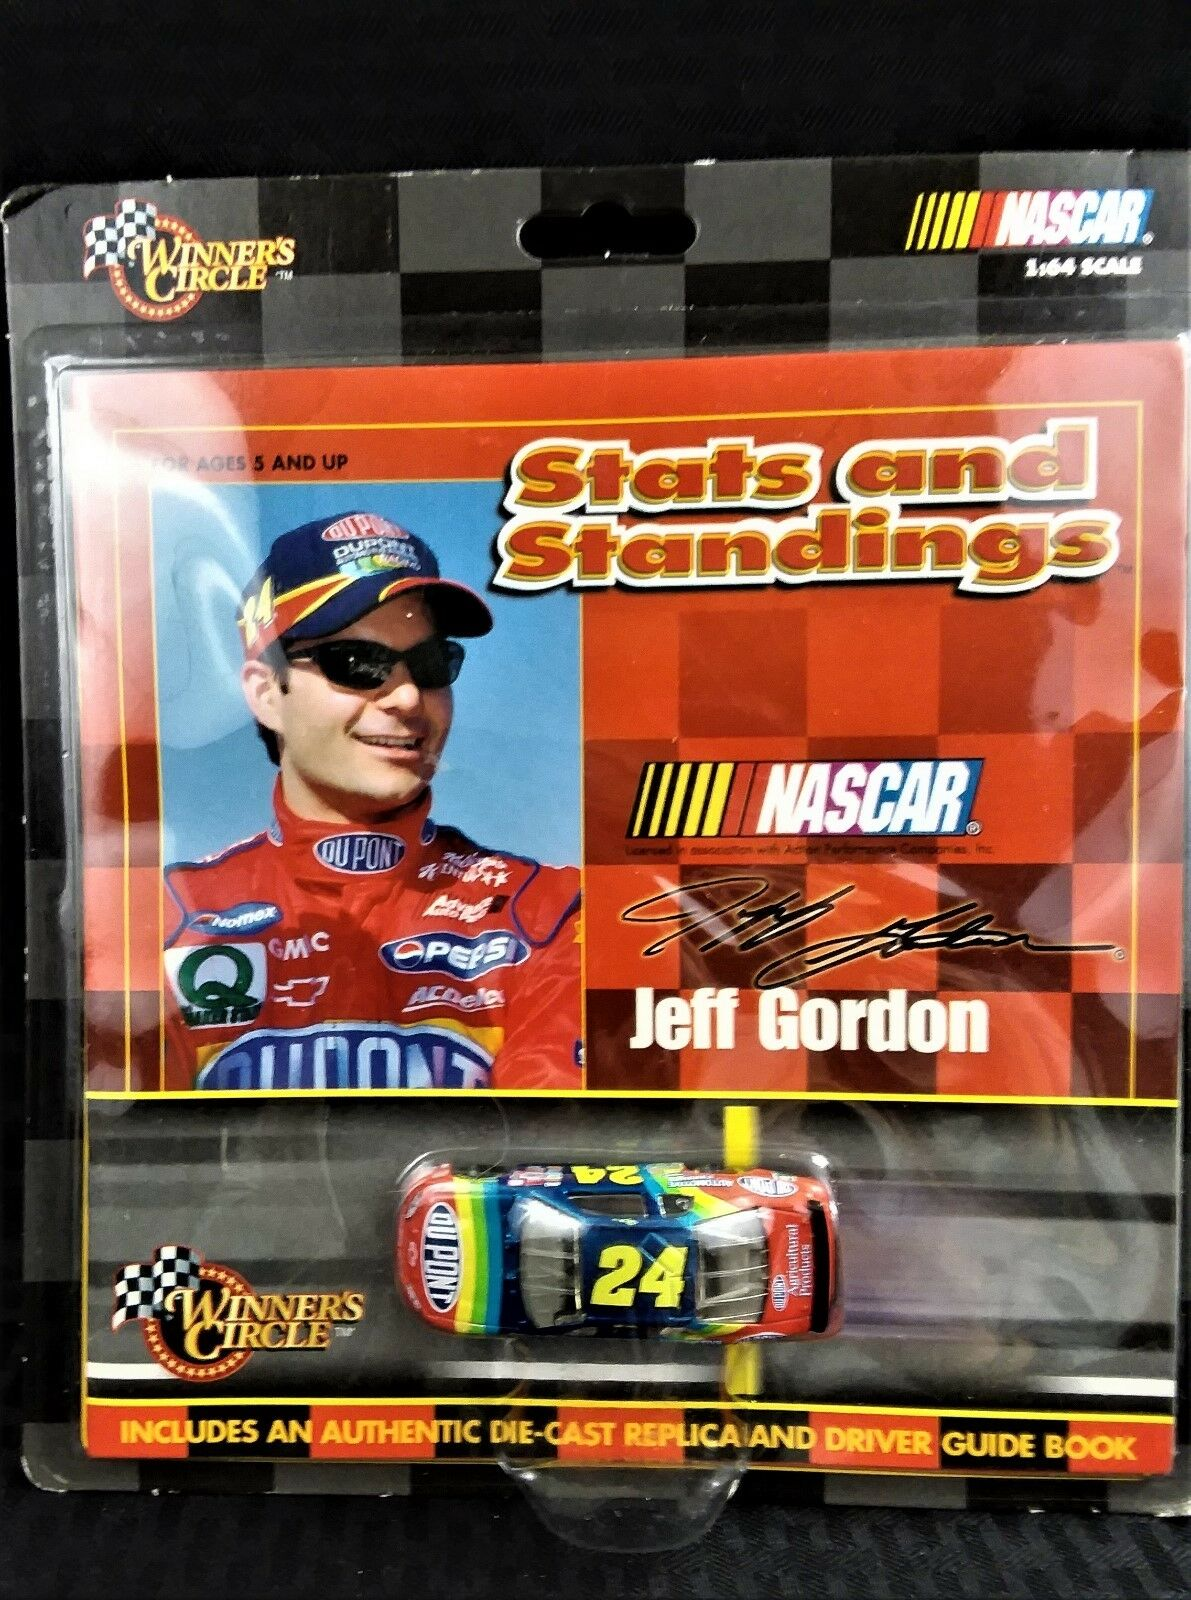 NEW NEW NEW HASBRO WINNER'S CIRCLE JEFF GORDON DIECAST CAR & GUIDE BOOK UNOPENED PKG 69bebc